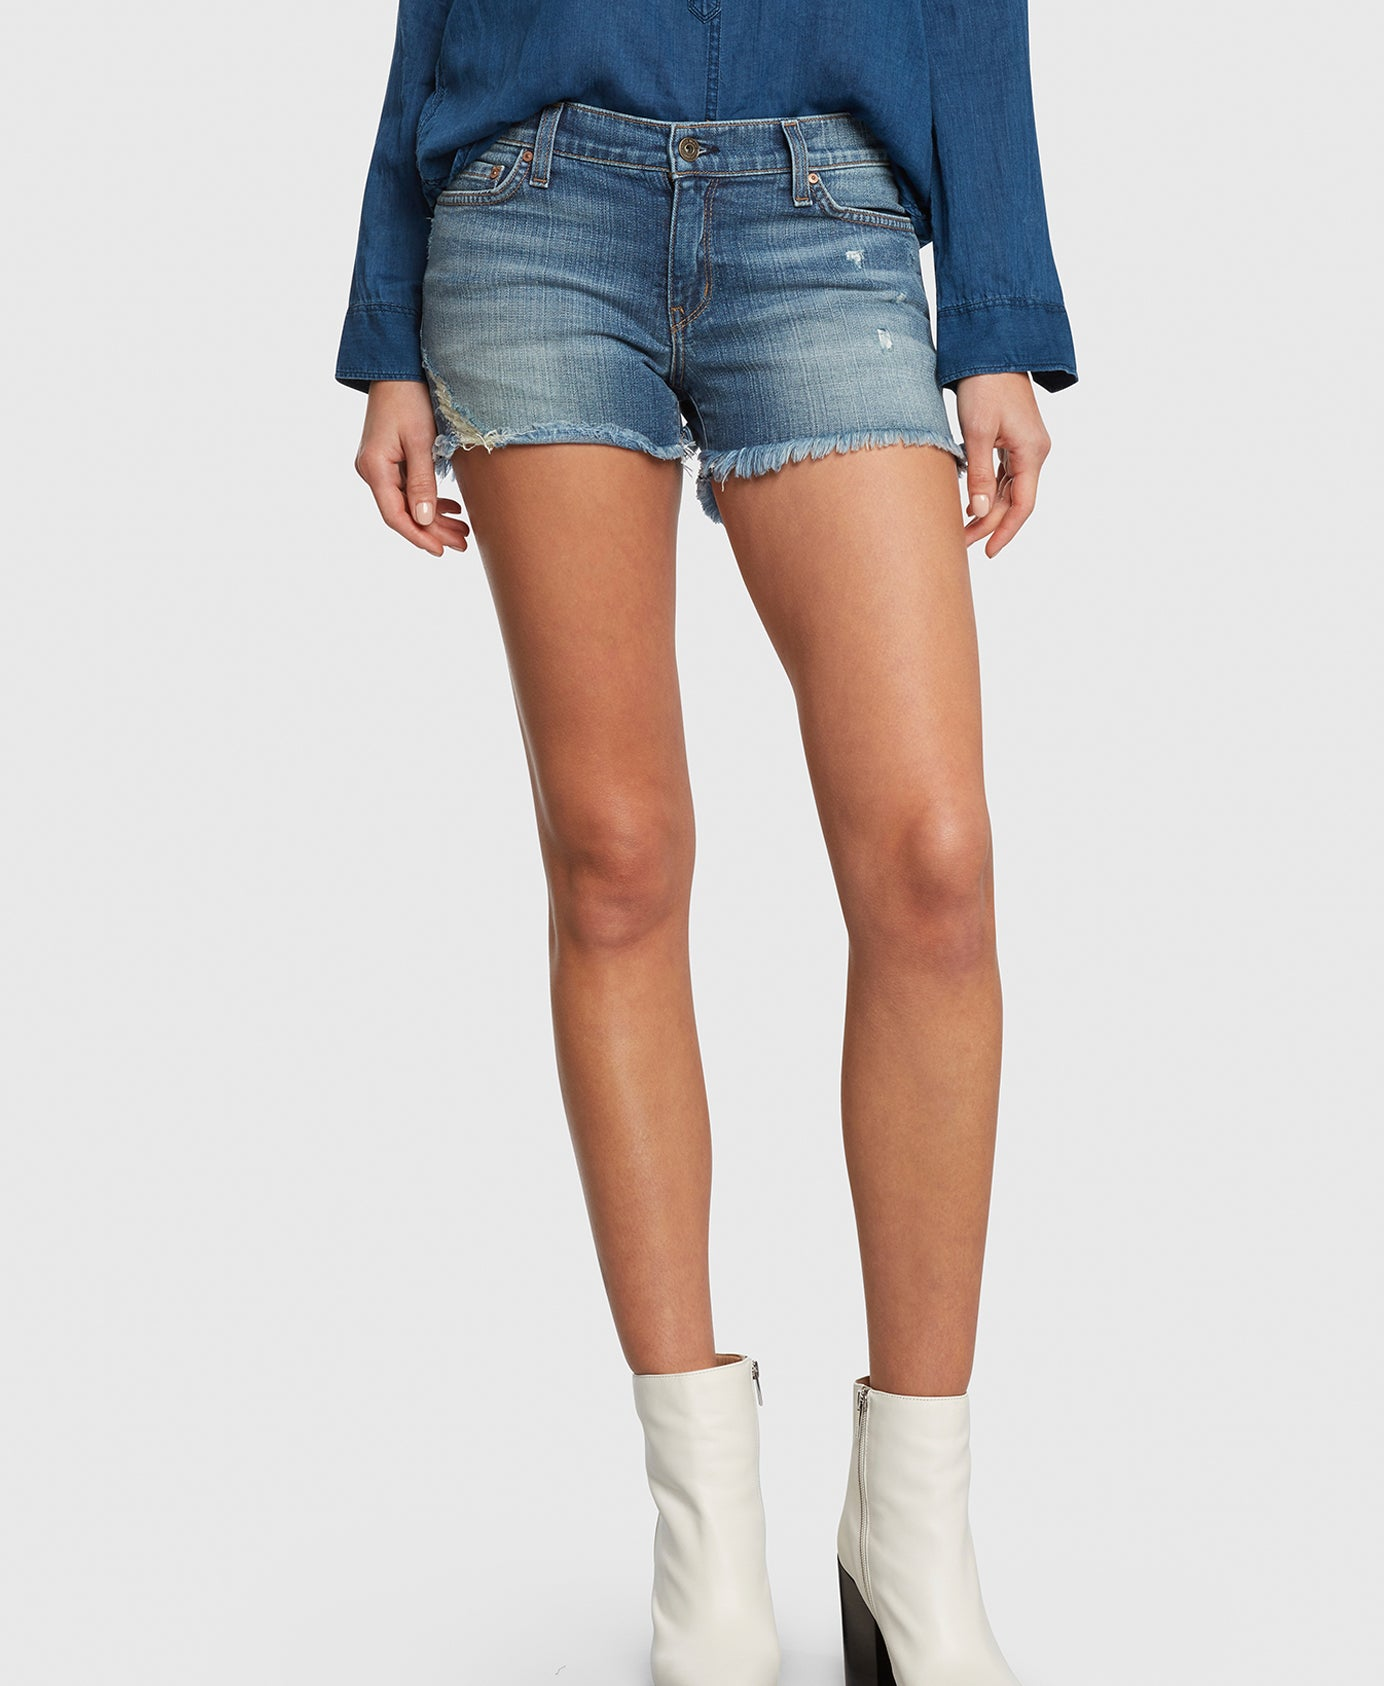 Principle WANDERER in Vacation denim shorts detail